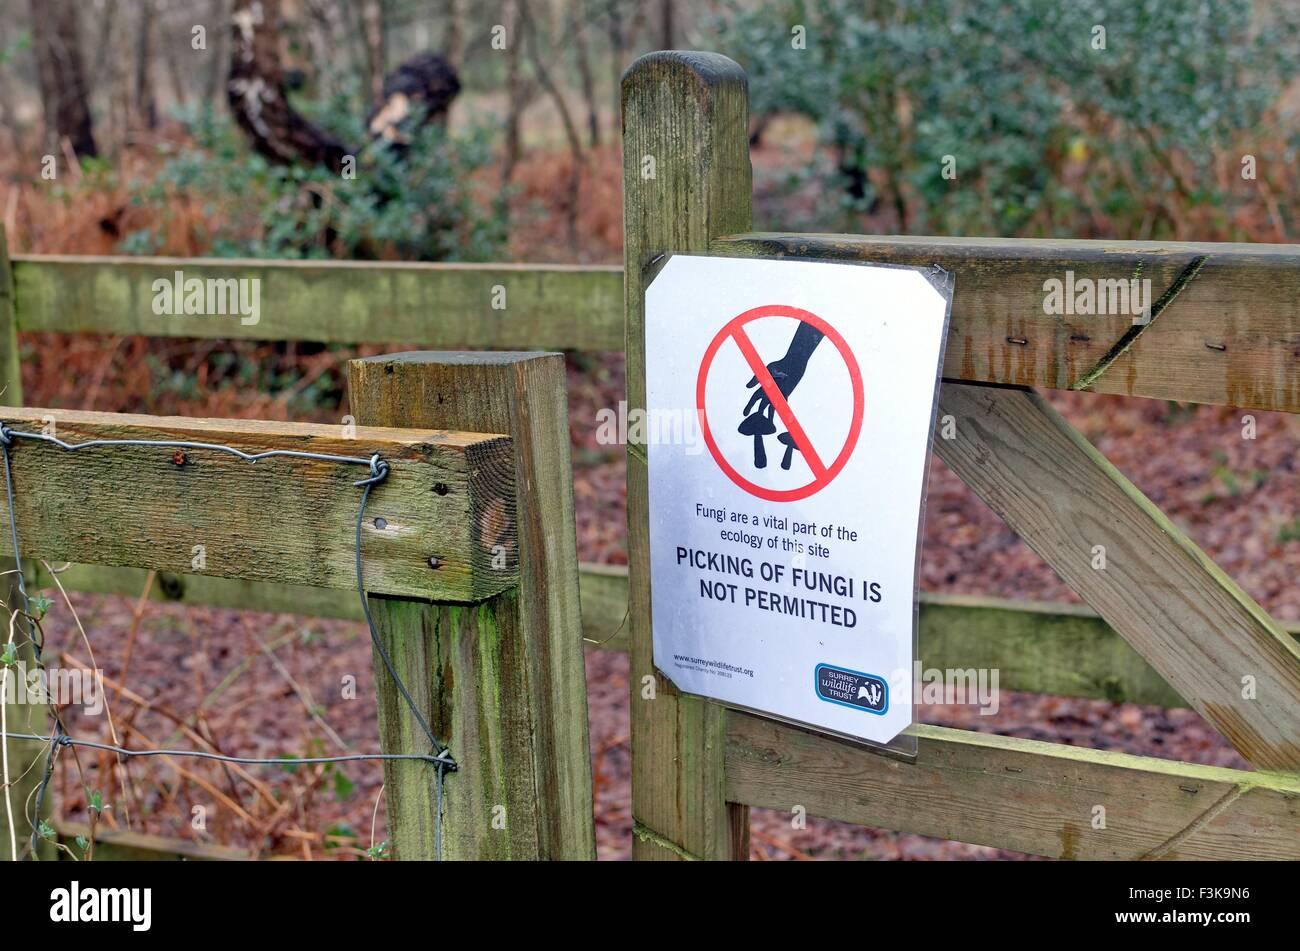 Not permitted to pick fungi sign on woodland gate in Surrey - Stock Image